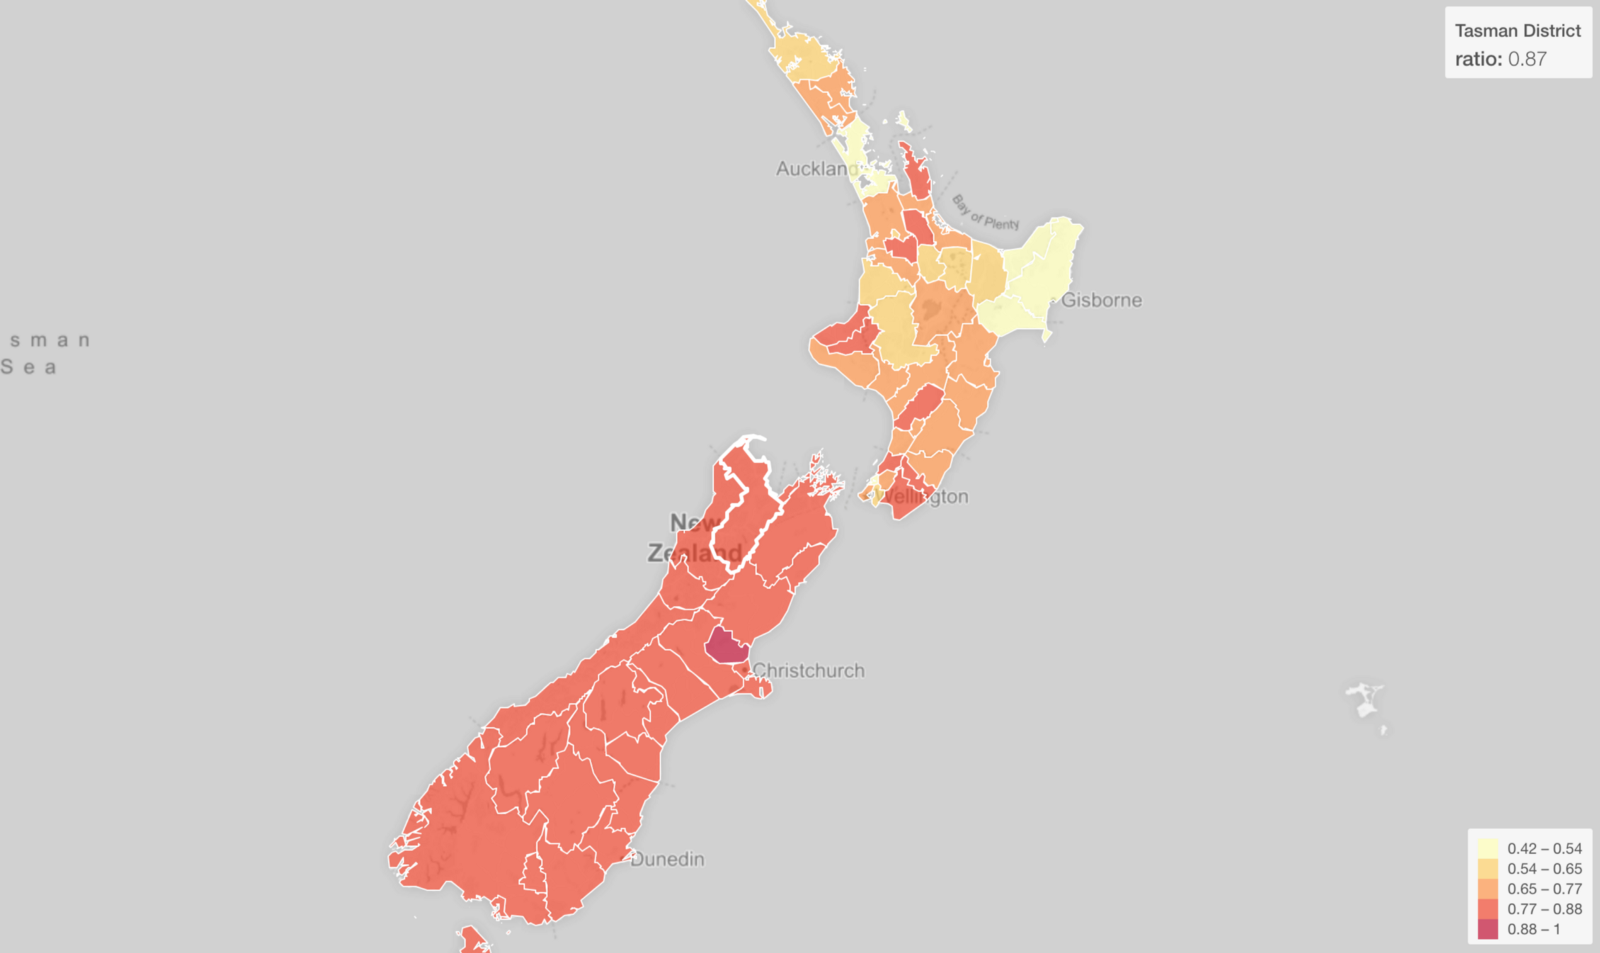 Where Is Christchurch New Zealand On The Map.Making Maps For New Zealand Regions And Territories In R